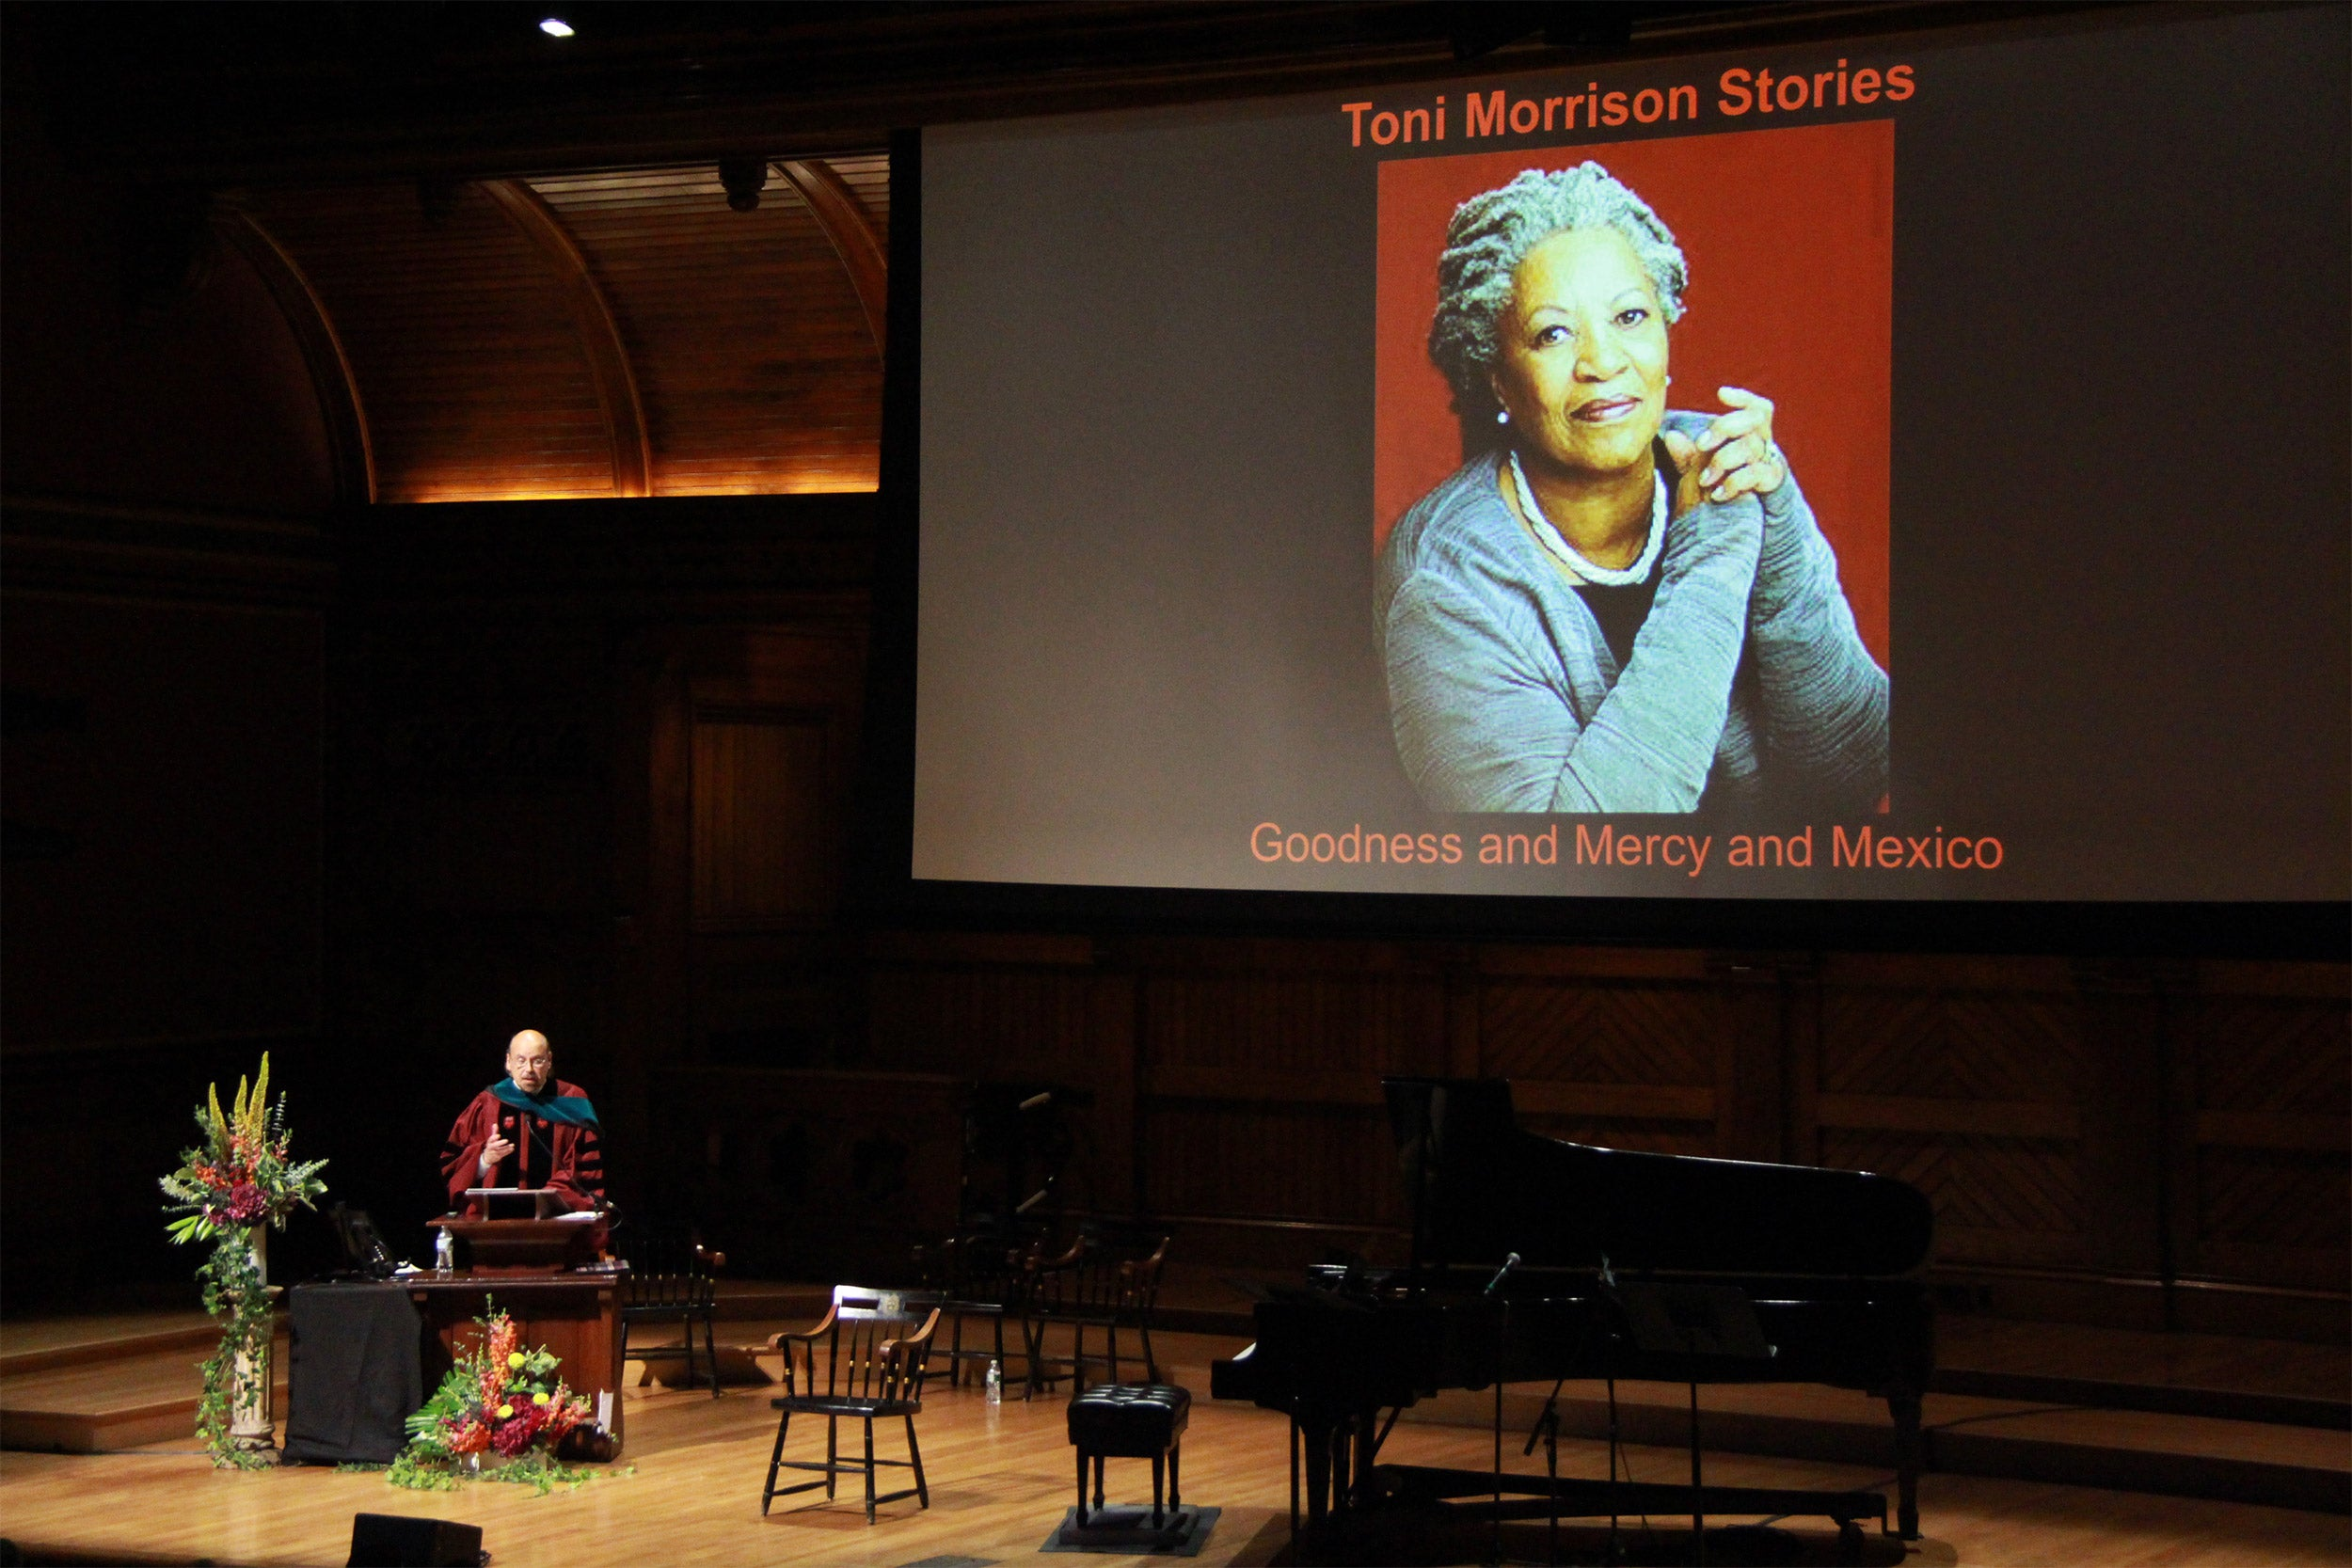 Toni Morrison's lessons take center stage at HDS Convocation